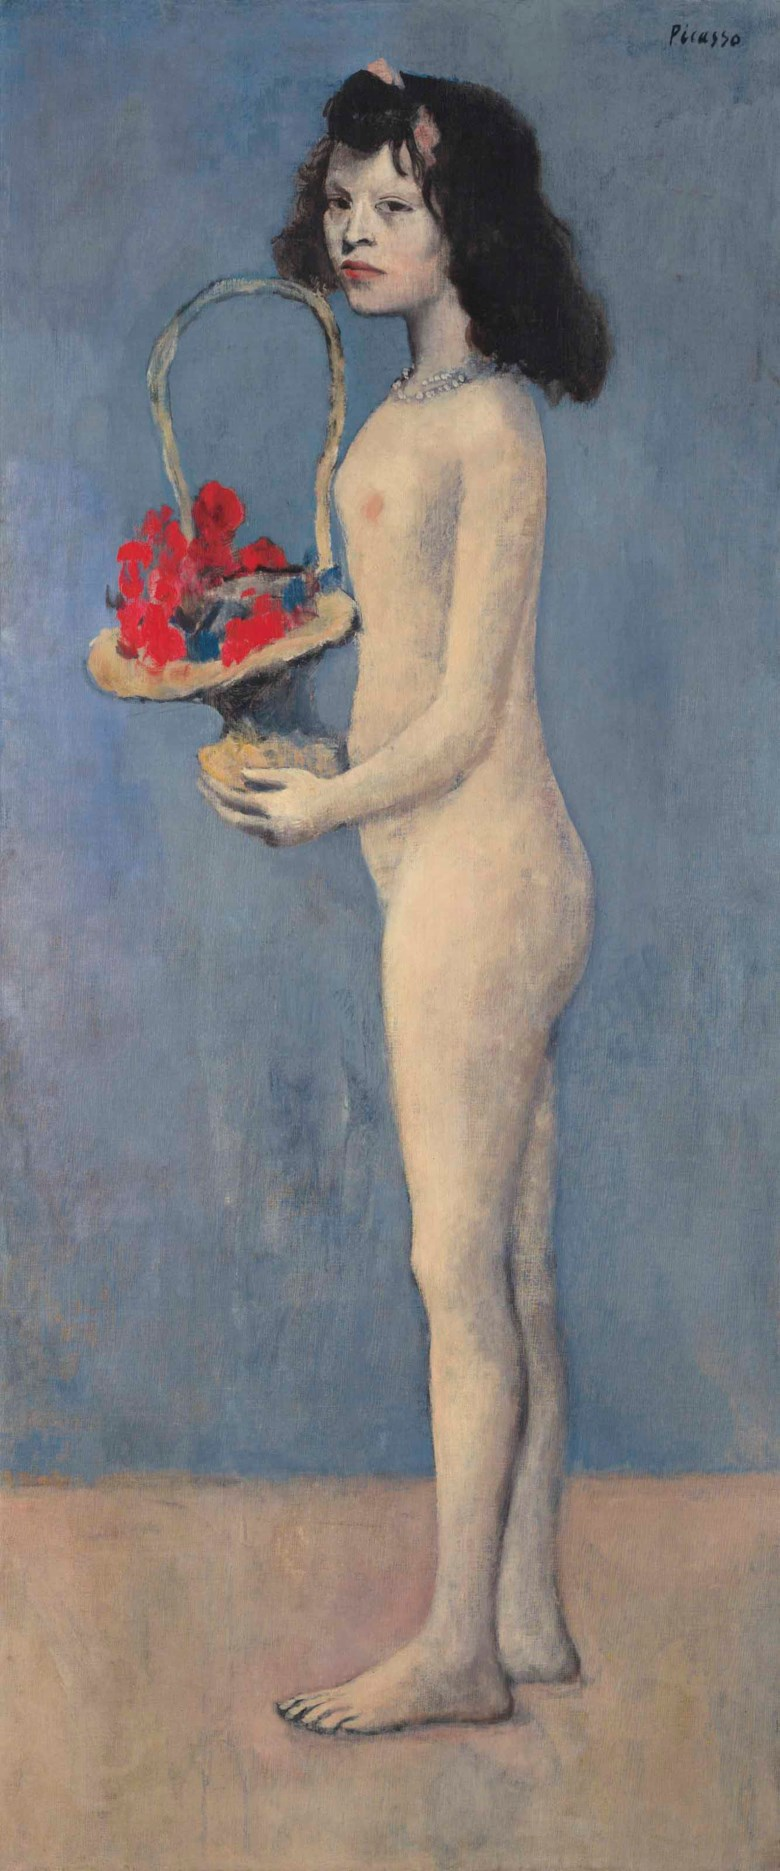 Pablo Picasso (1881-1973), Fillette à la corbeille fleurie, 1905. 60⅞ x 26  in (154.8 x 66.1  cm). Estimate on request. Offered in The Collection of Peggy and David Rockefeller 19th and 20th Century Art, Evening Sale on 8 May at Christie's in New York © Succession PicassoDACS, London 2018